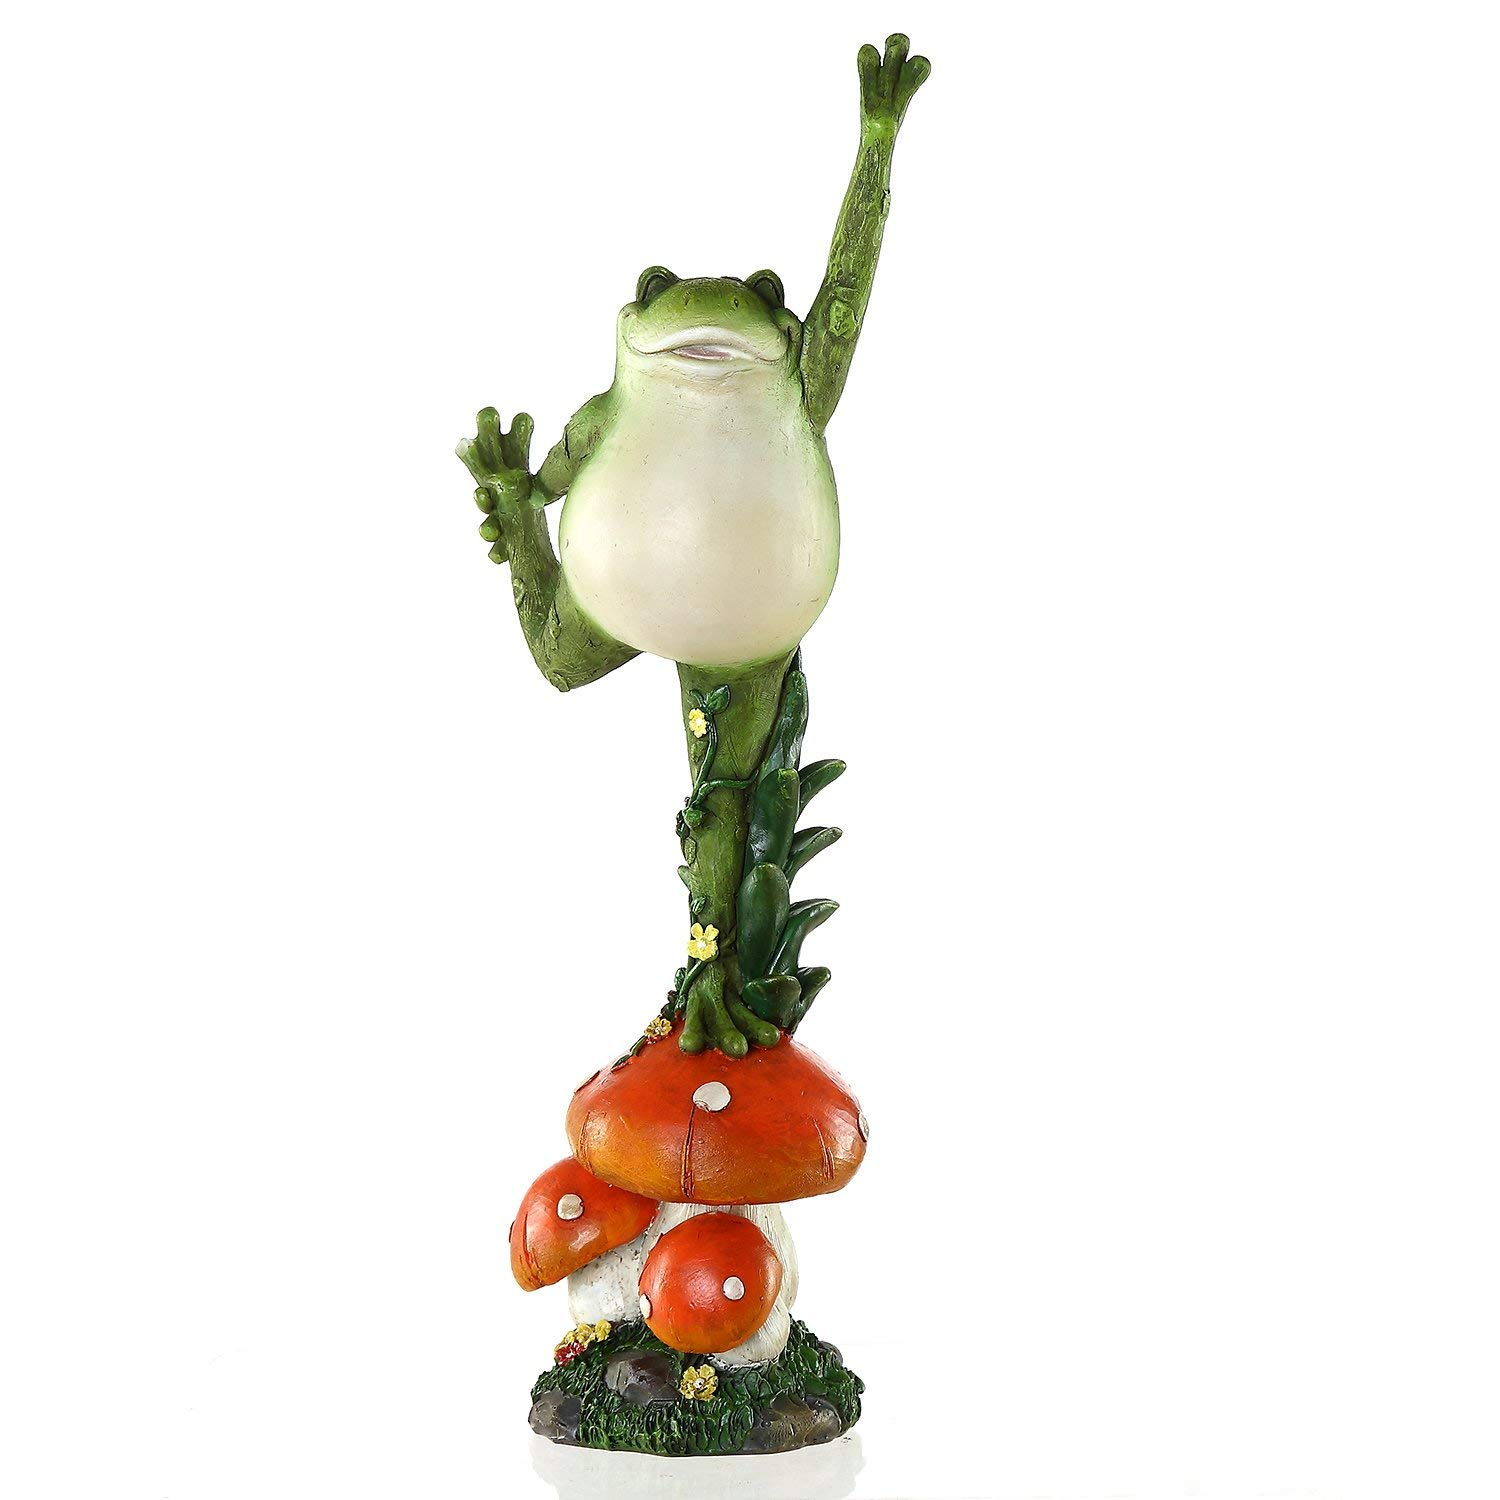 Ivy Home Hand Painted Outdoor Garden Statuary,Yoga Frog Standing on The Mushroom